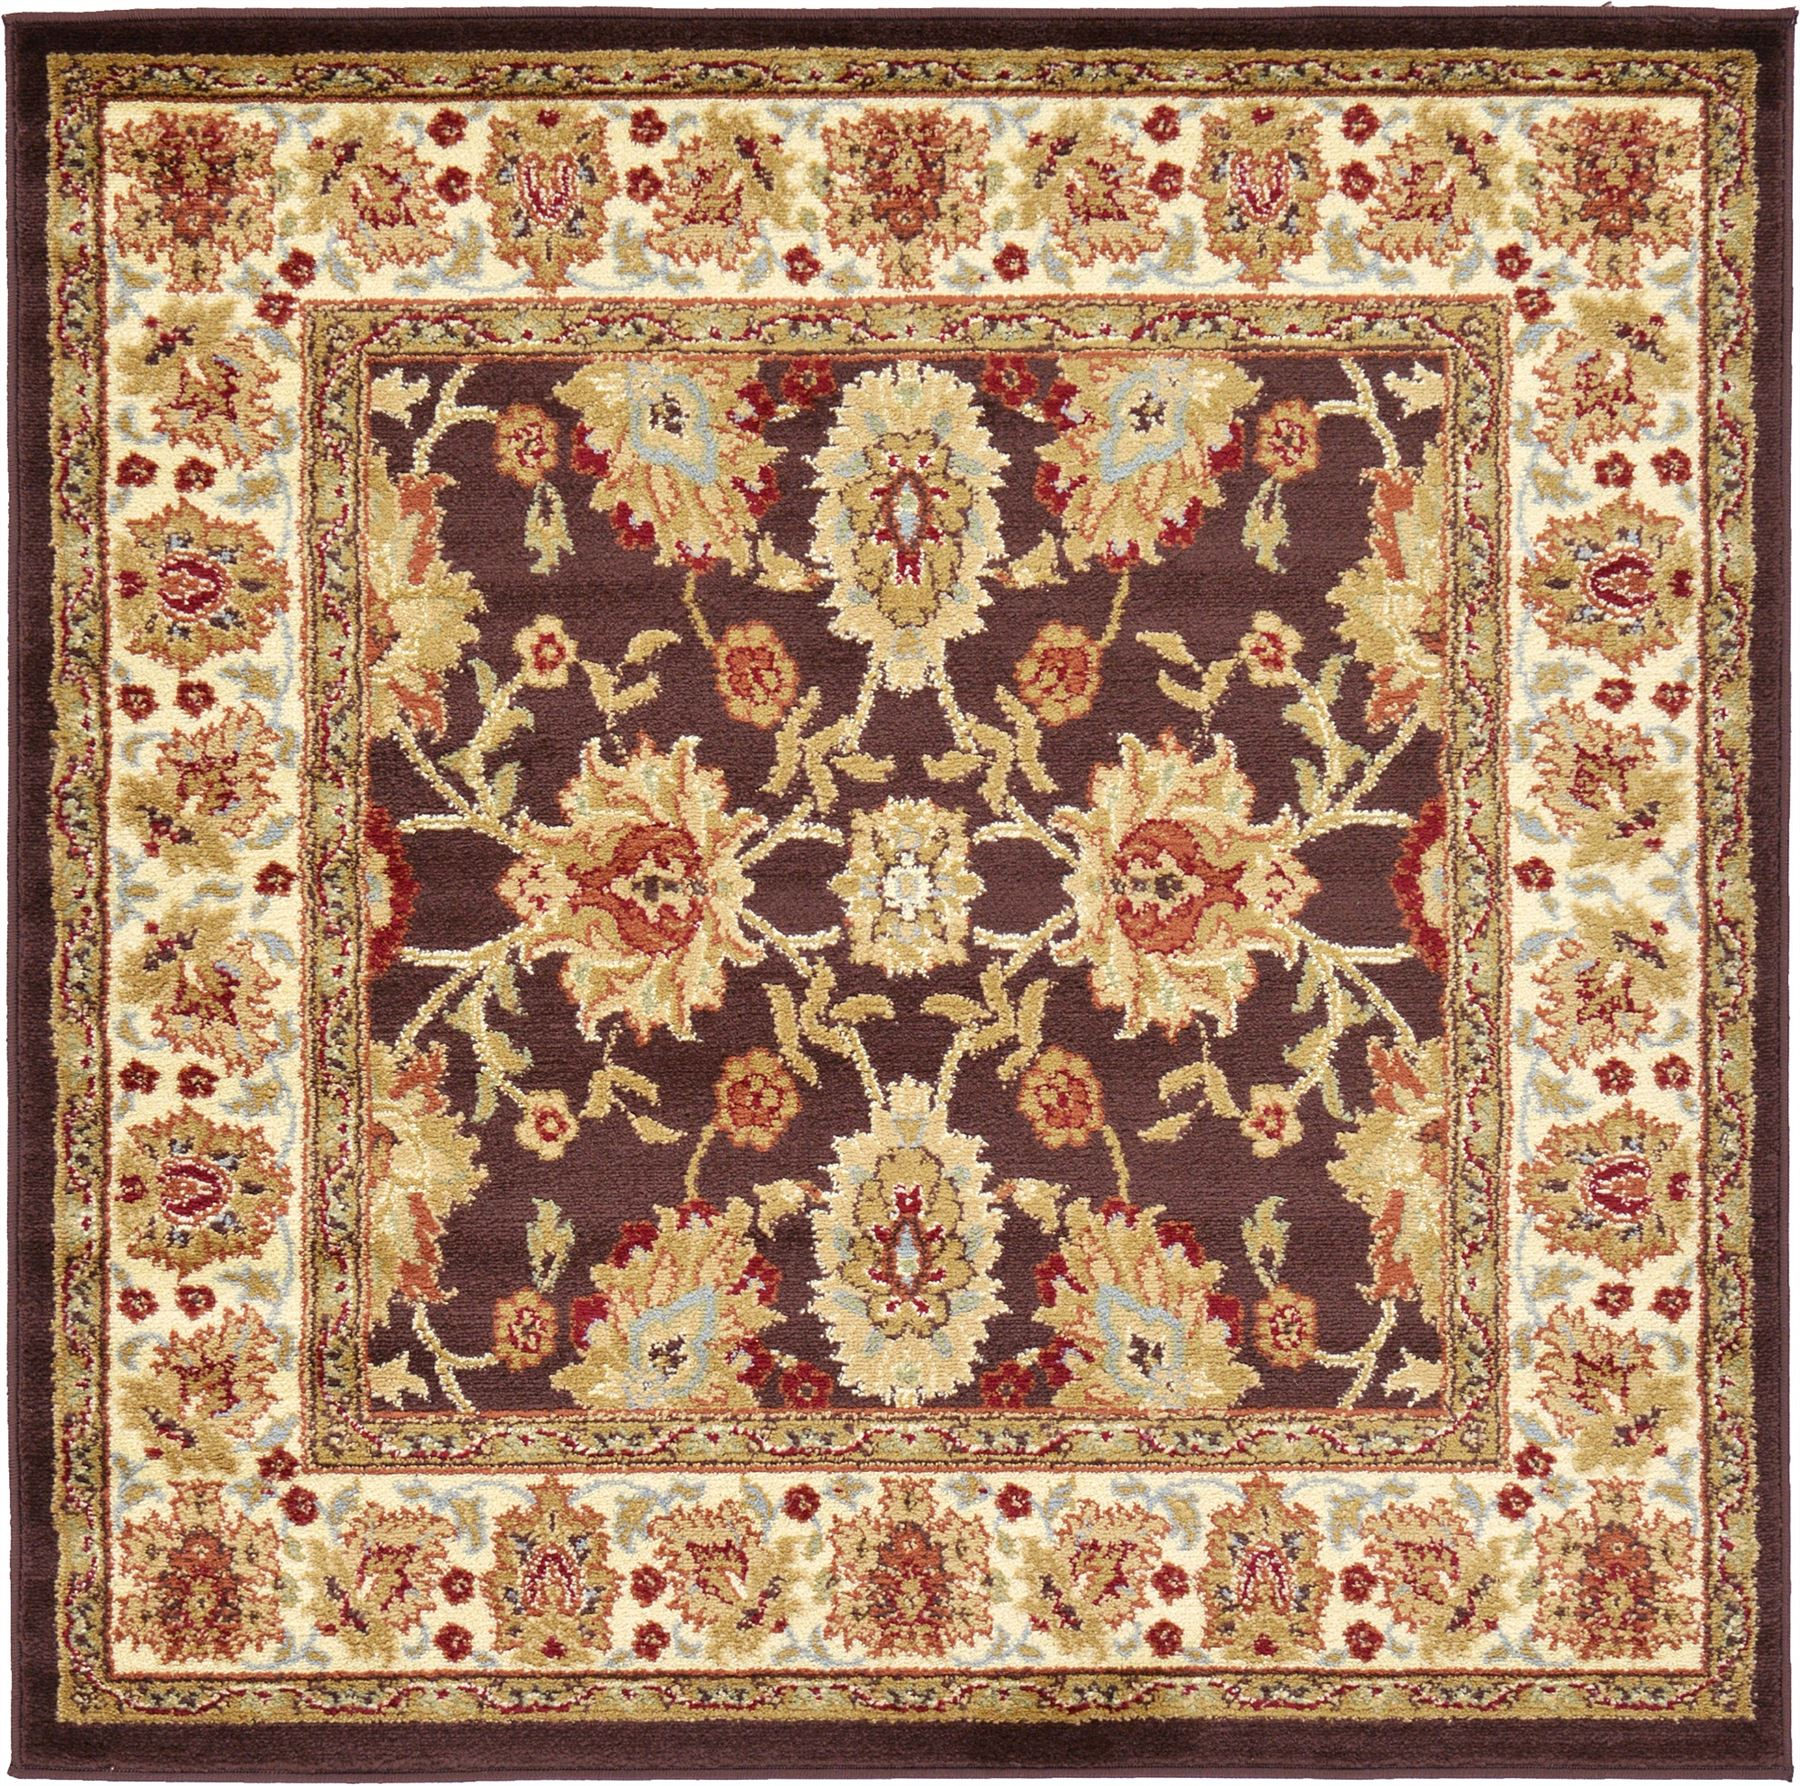 Traditional Rug Oriental Area Rug Runner-Round-Rug Persian